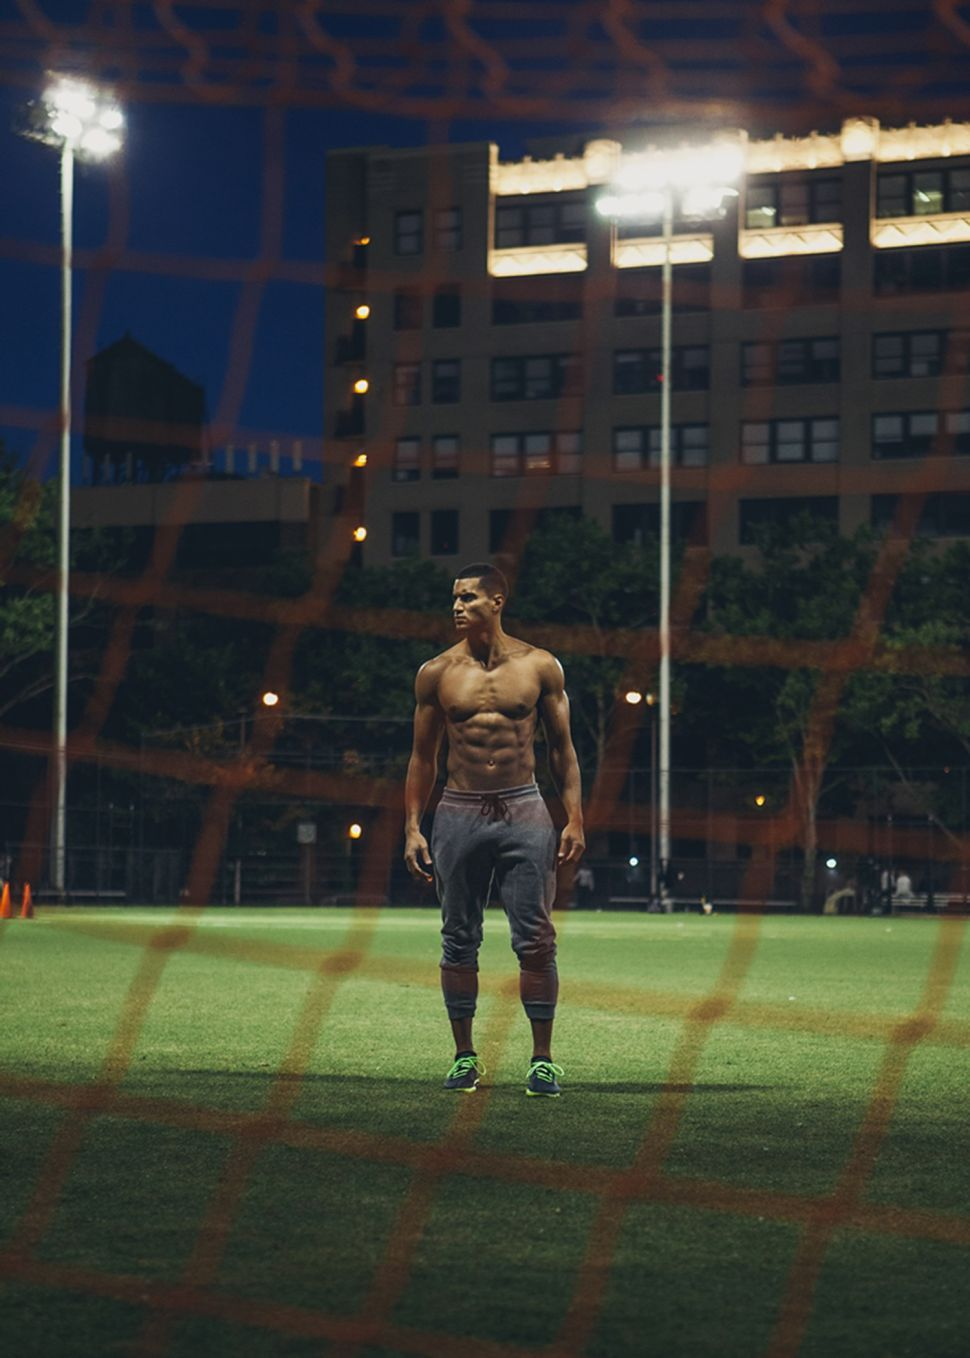 Tastemakers: What's Your Go-To Summer City Workout?